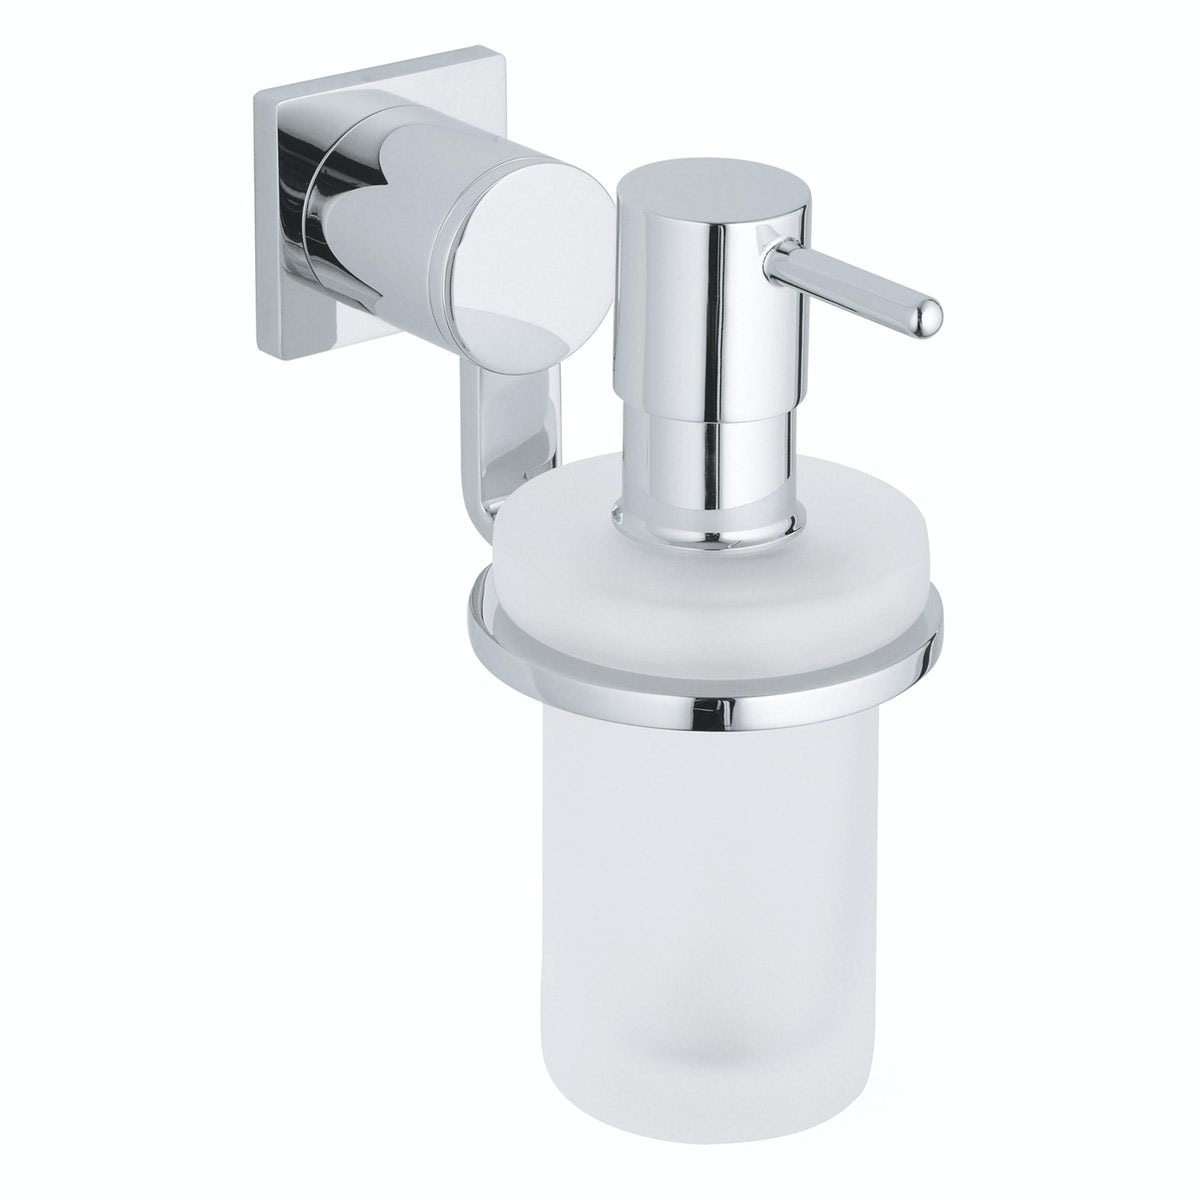 Grohe Allure soap dispenser